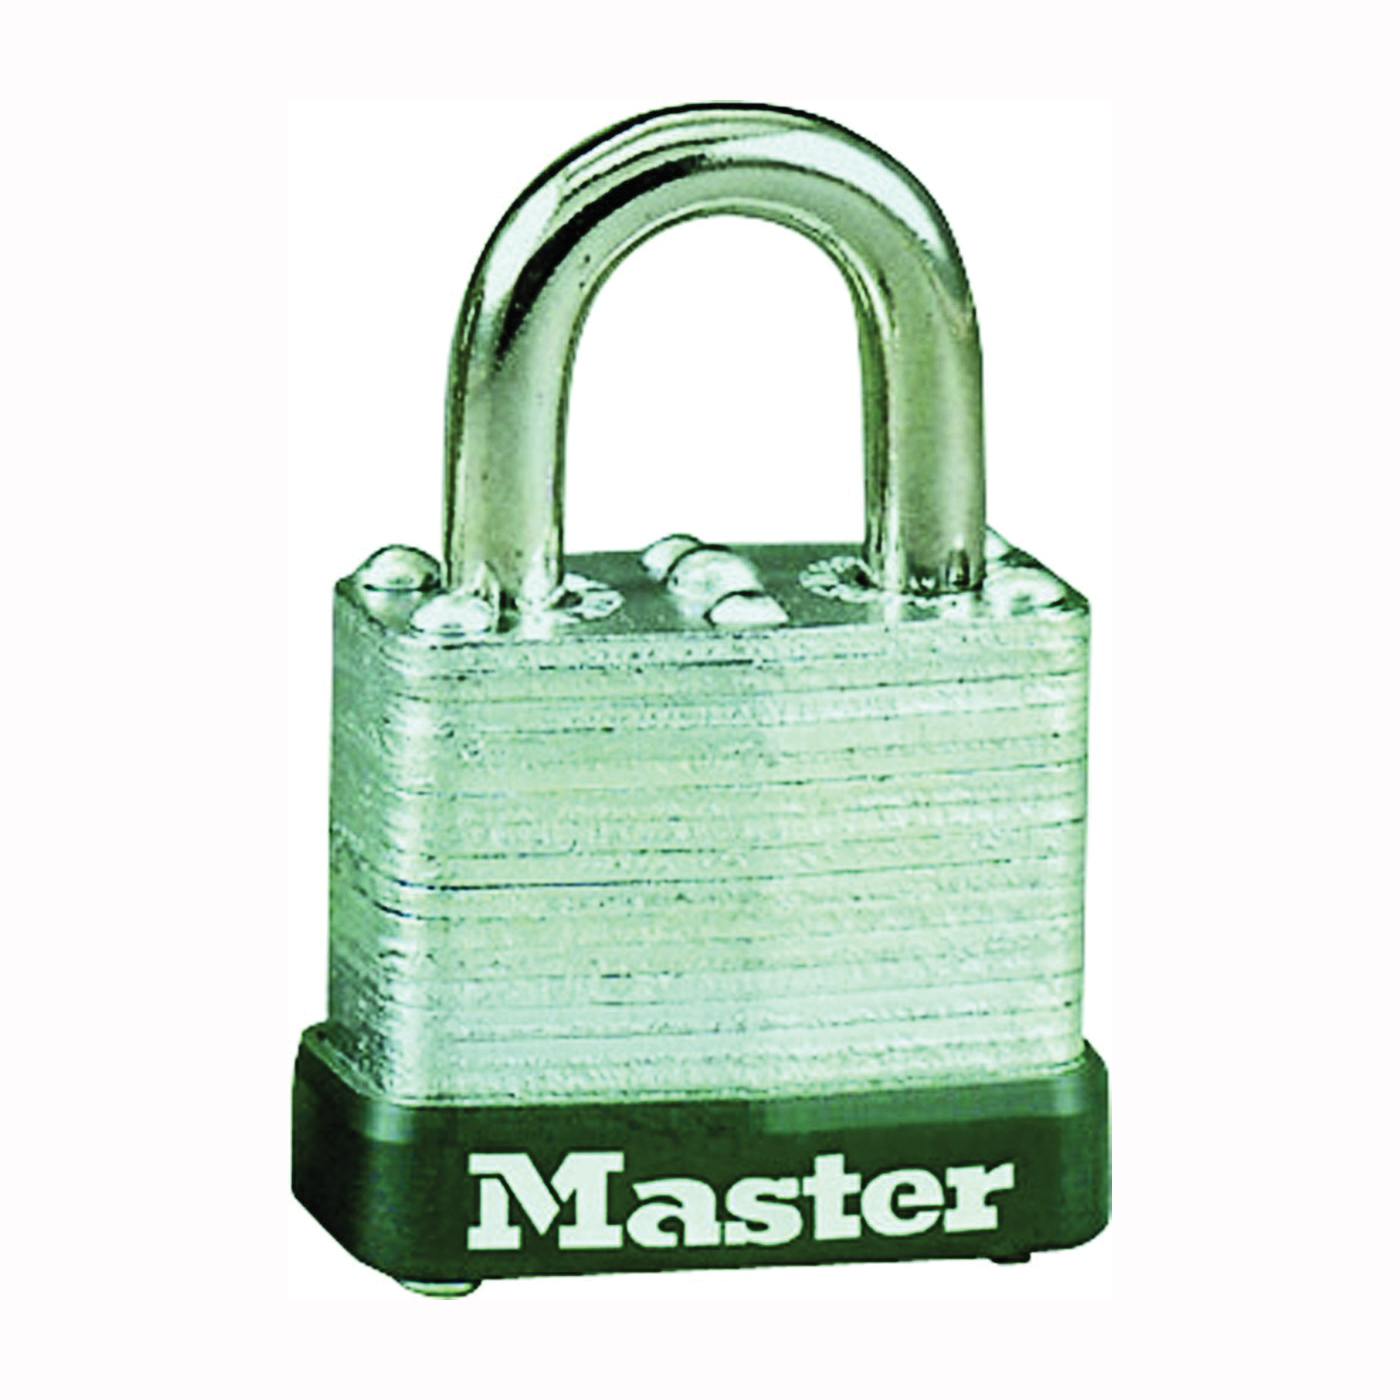 Picture of Master Lock 105D Padlock, Keyed Different Key, 3/16 in Dia Shackle, Steel Shackle, Steel Body, 1-1/8 in W Body